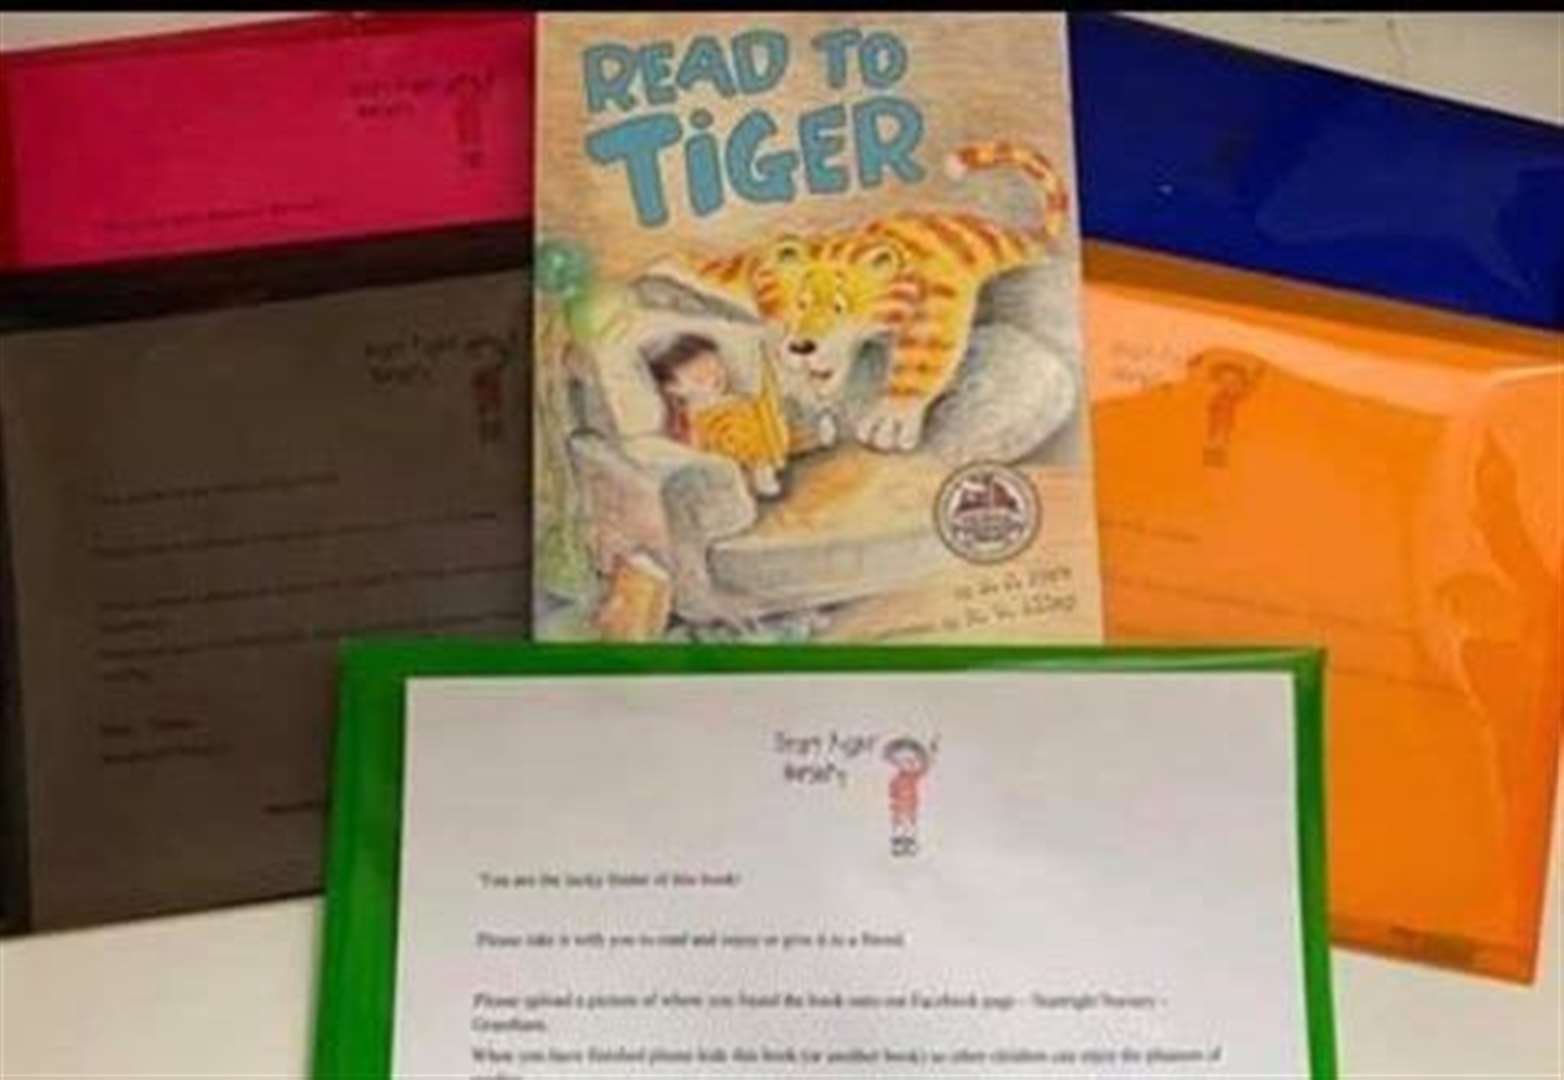 Nursery launches treasure hunt for books around Grantham